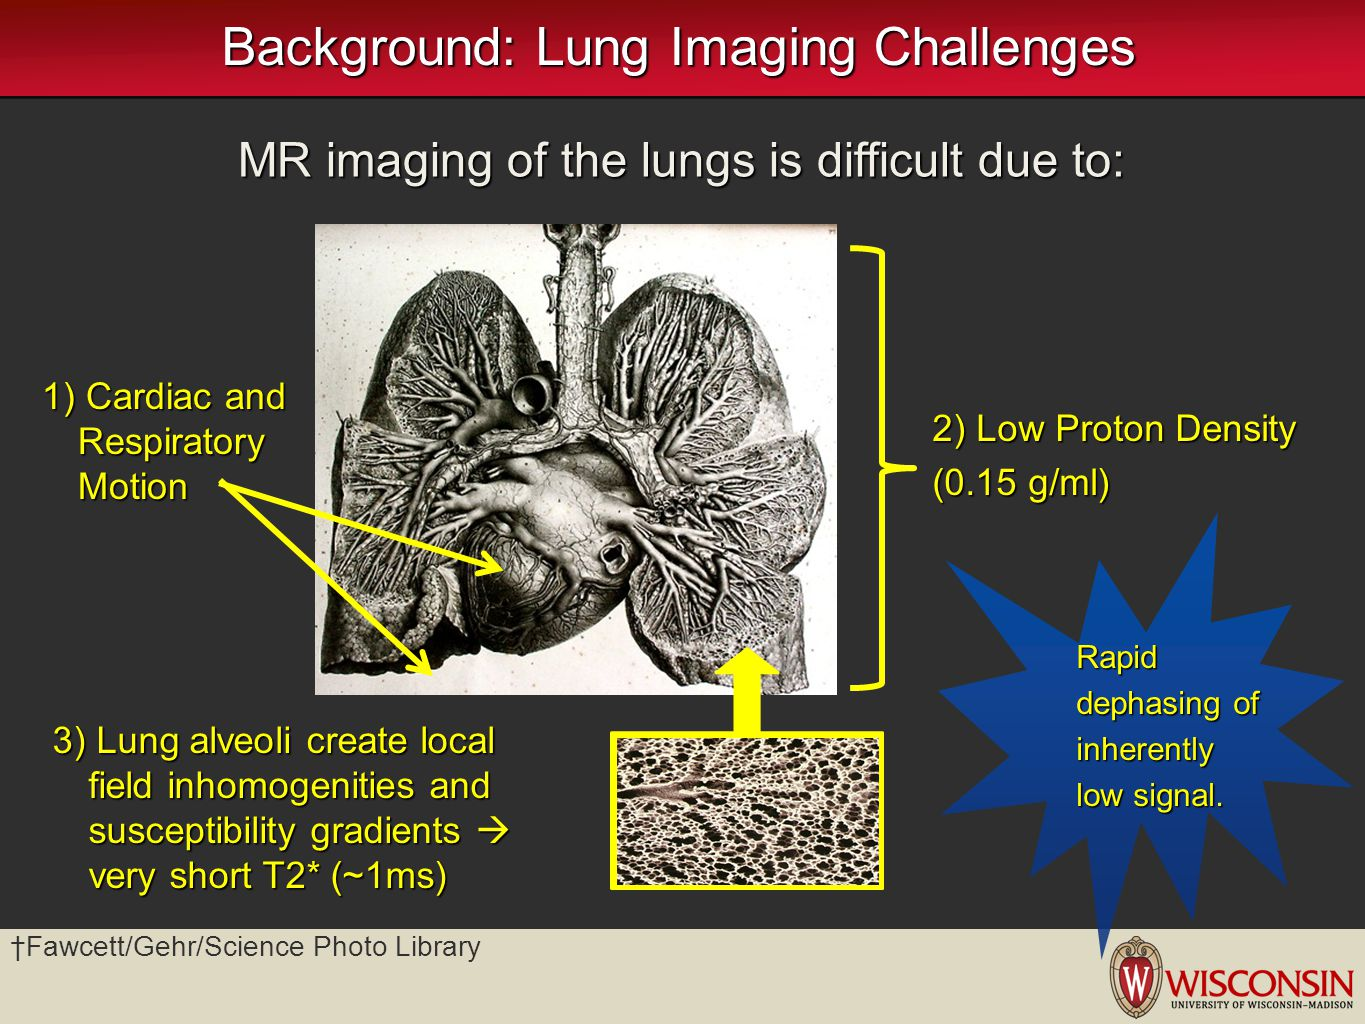 Background: Lung Imaging Challenges MR imaging of the lungs is difficult due to: 1) Cardiac and Respiratory Motion 2) Low Proton Density (0.15 g/ml) 3